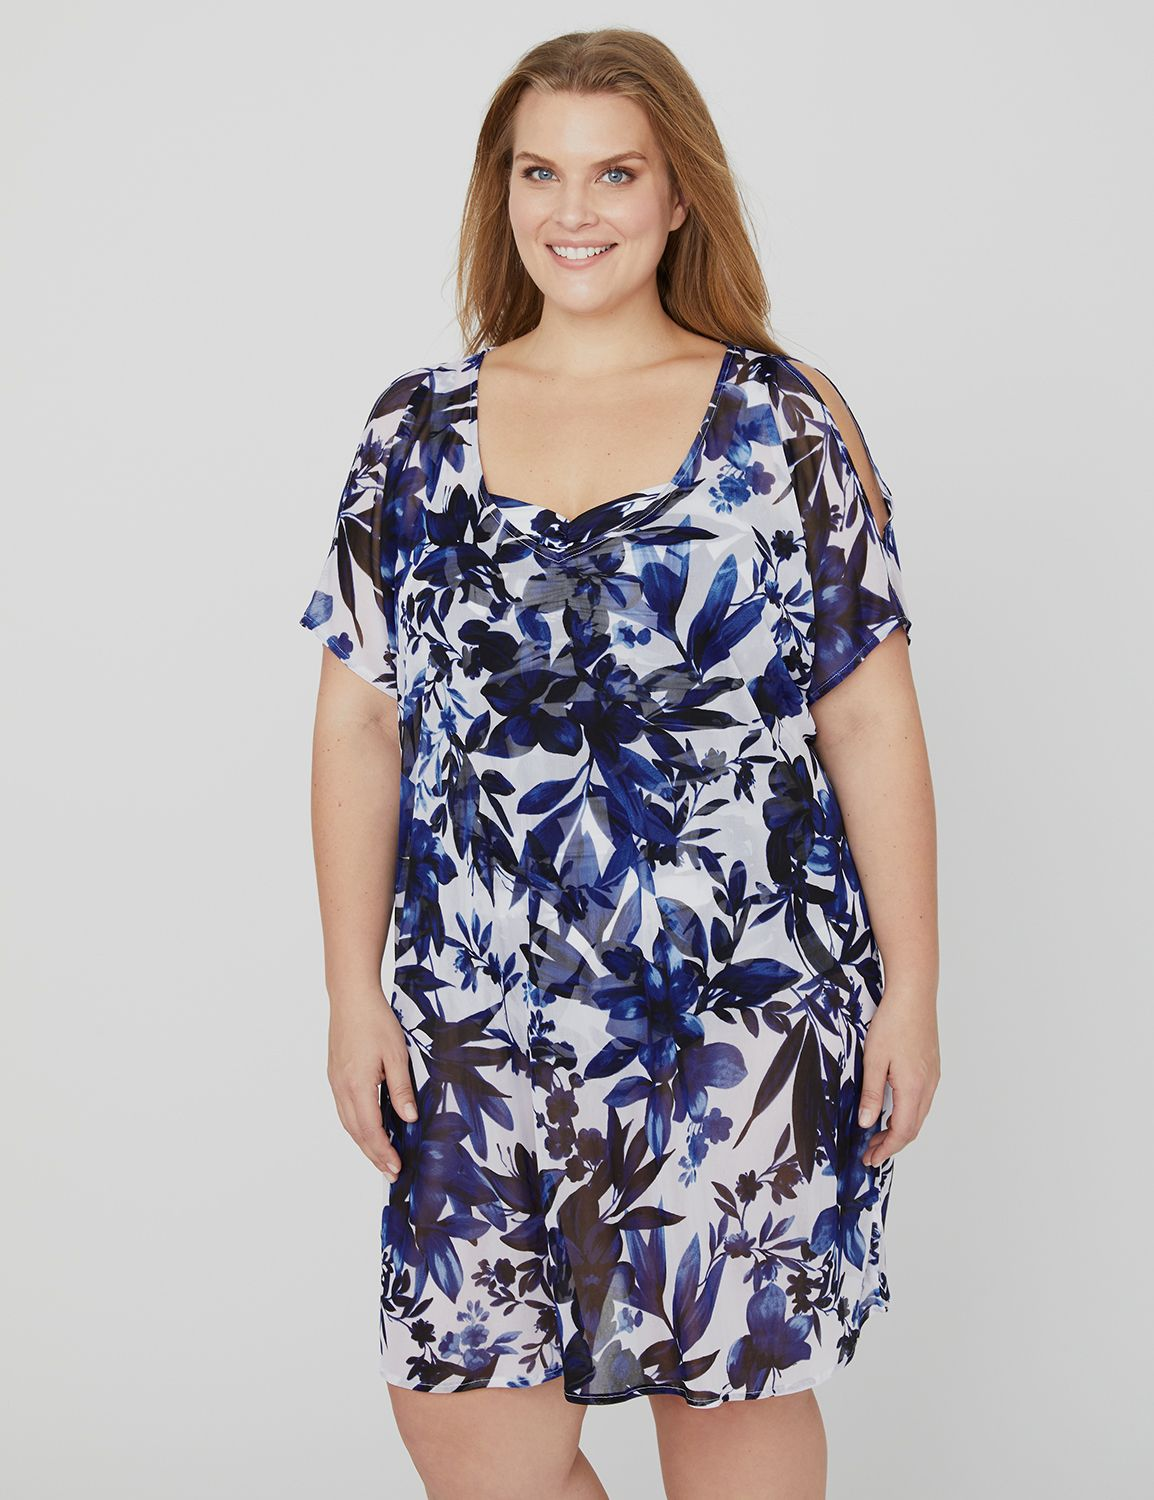 Lakeside Floral Sheer Cover-Up 1088510-Printed Mesh Cover-up MP-300096385